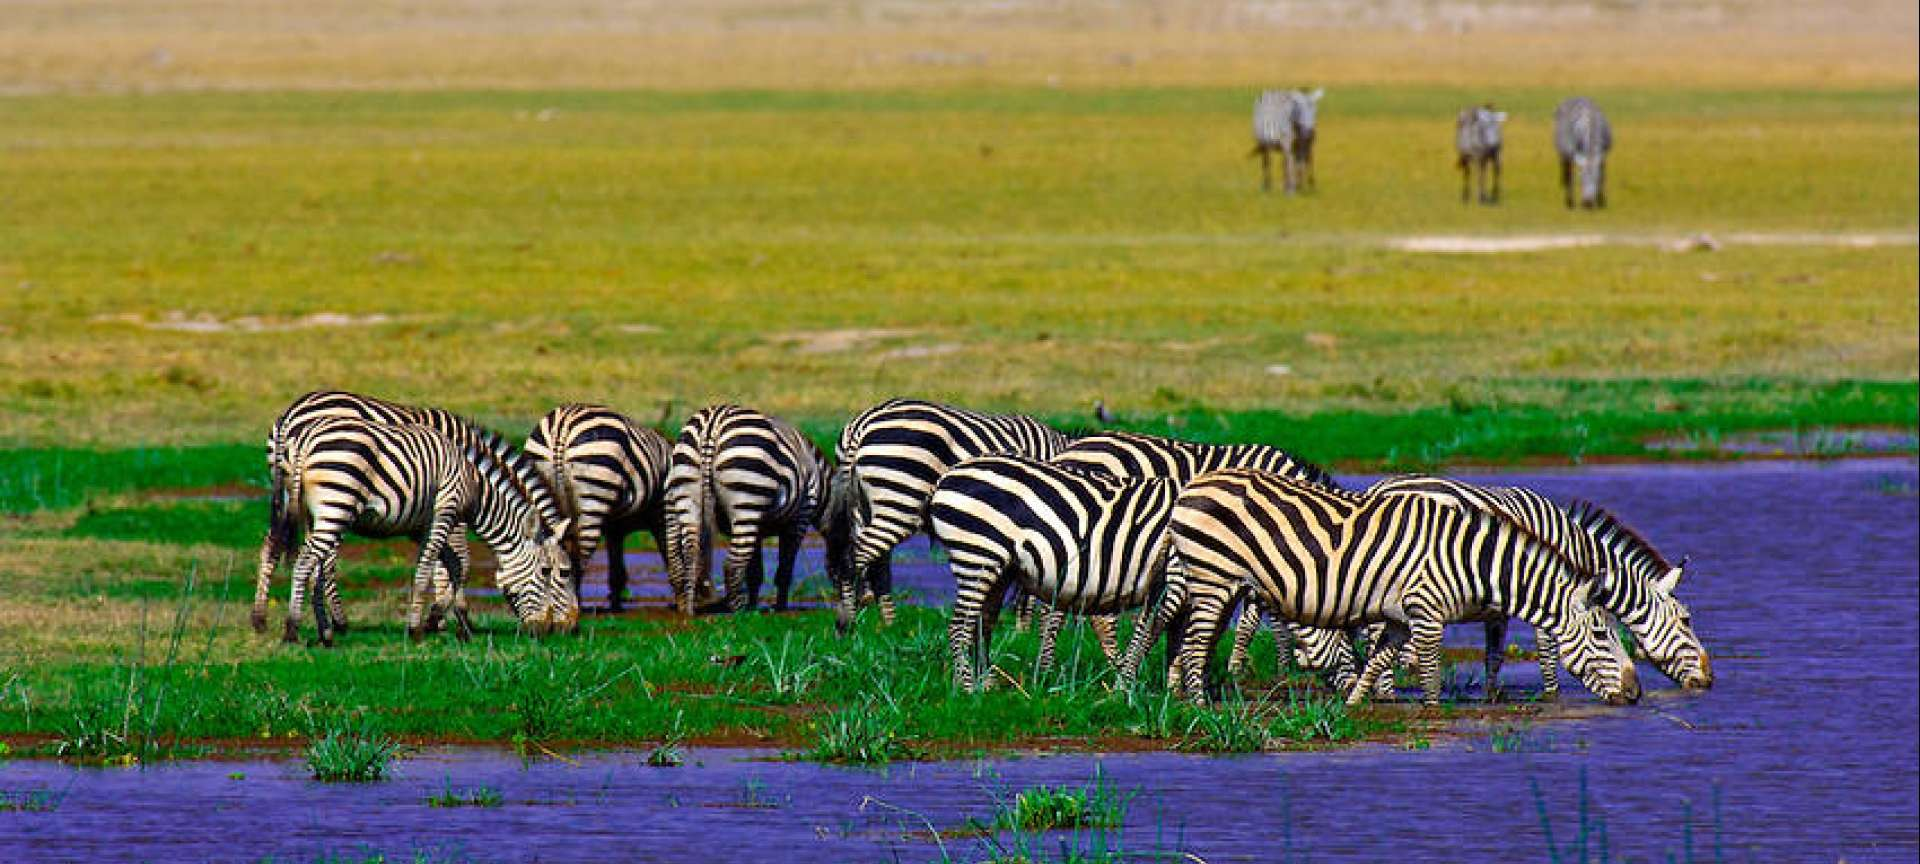 Zebra always photograph so well against the backdrop of the African savannah